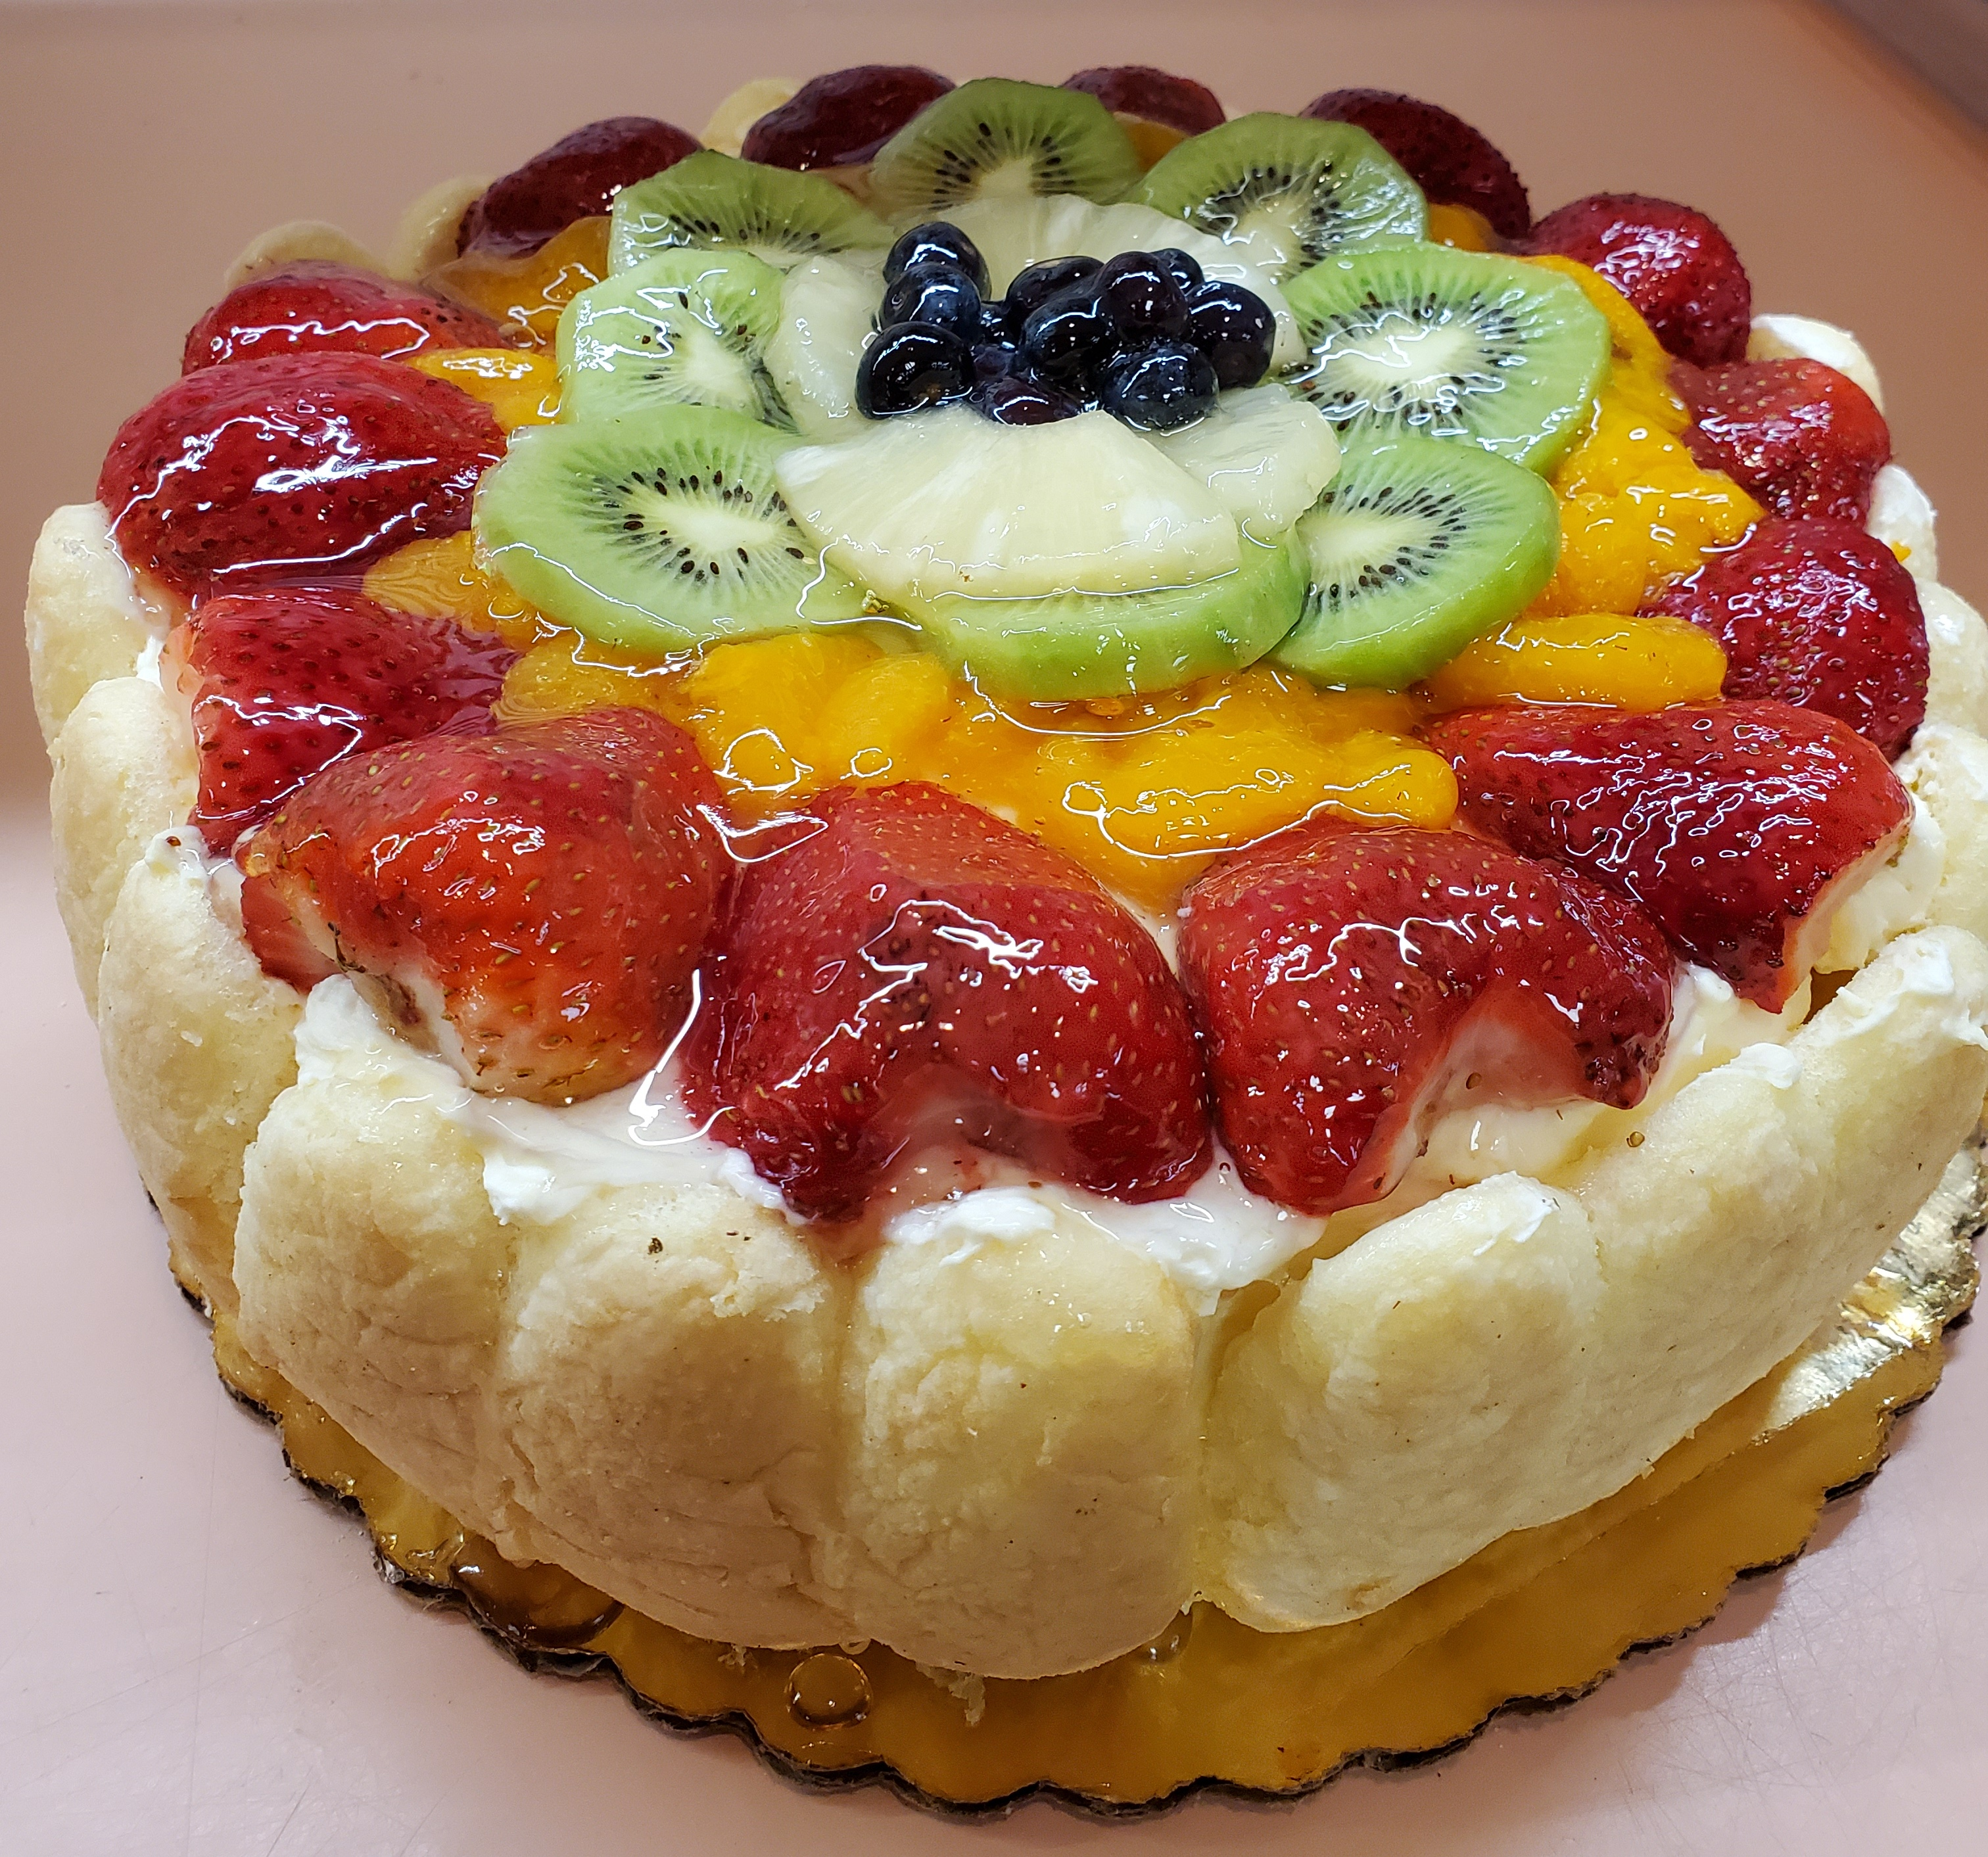 Cheesecake with Fruit Topping